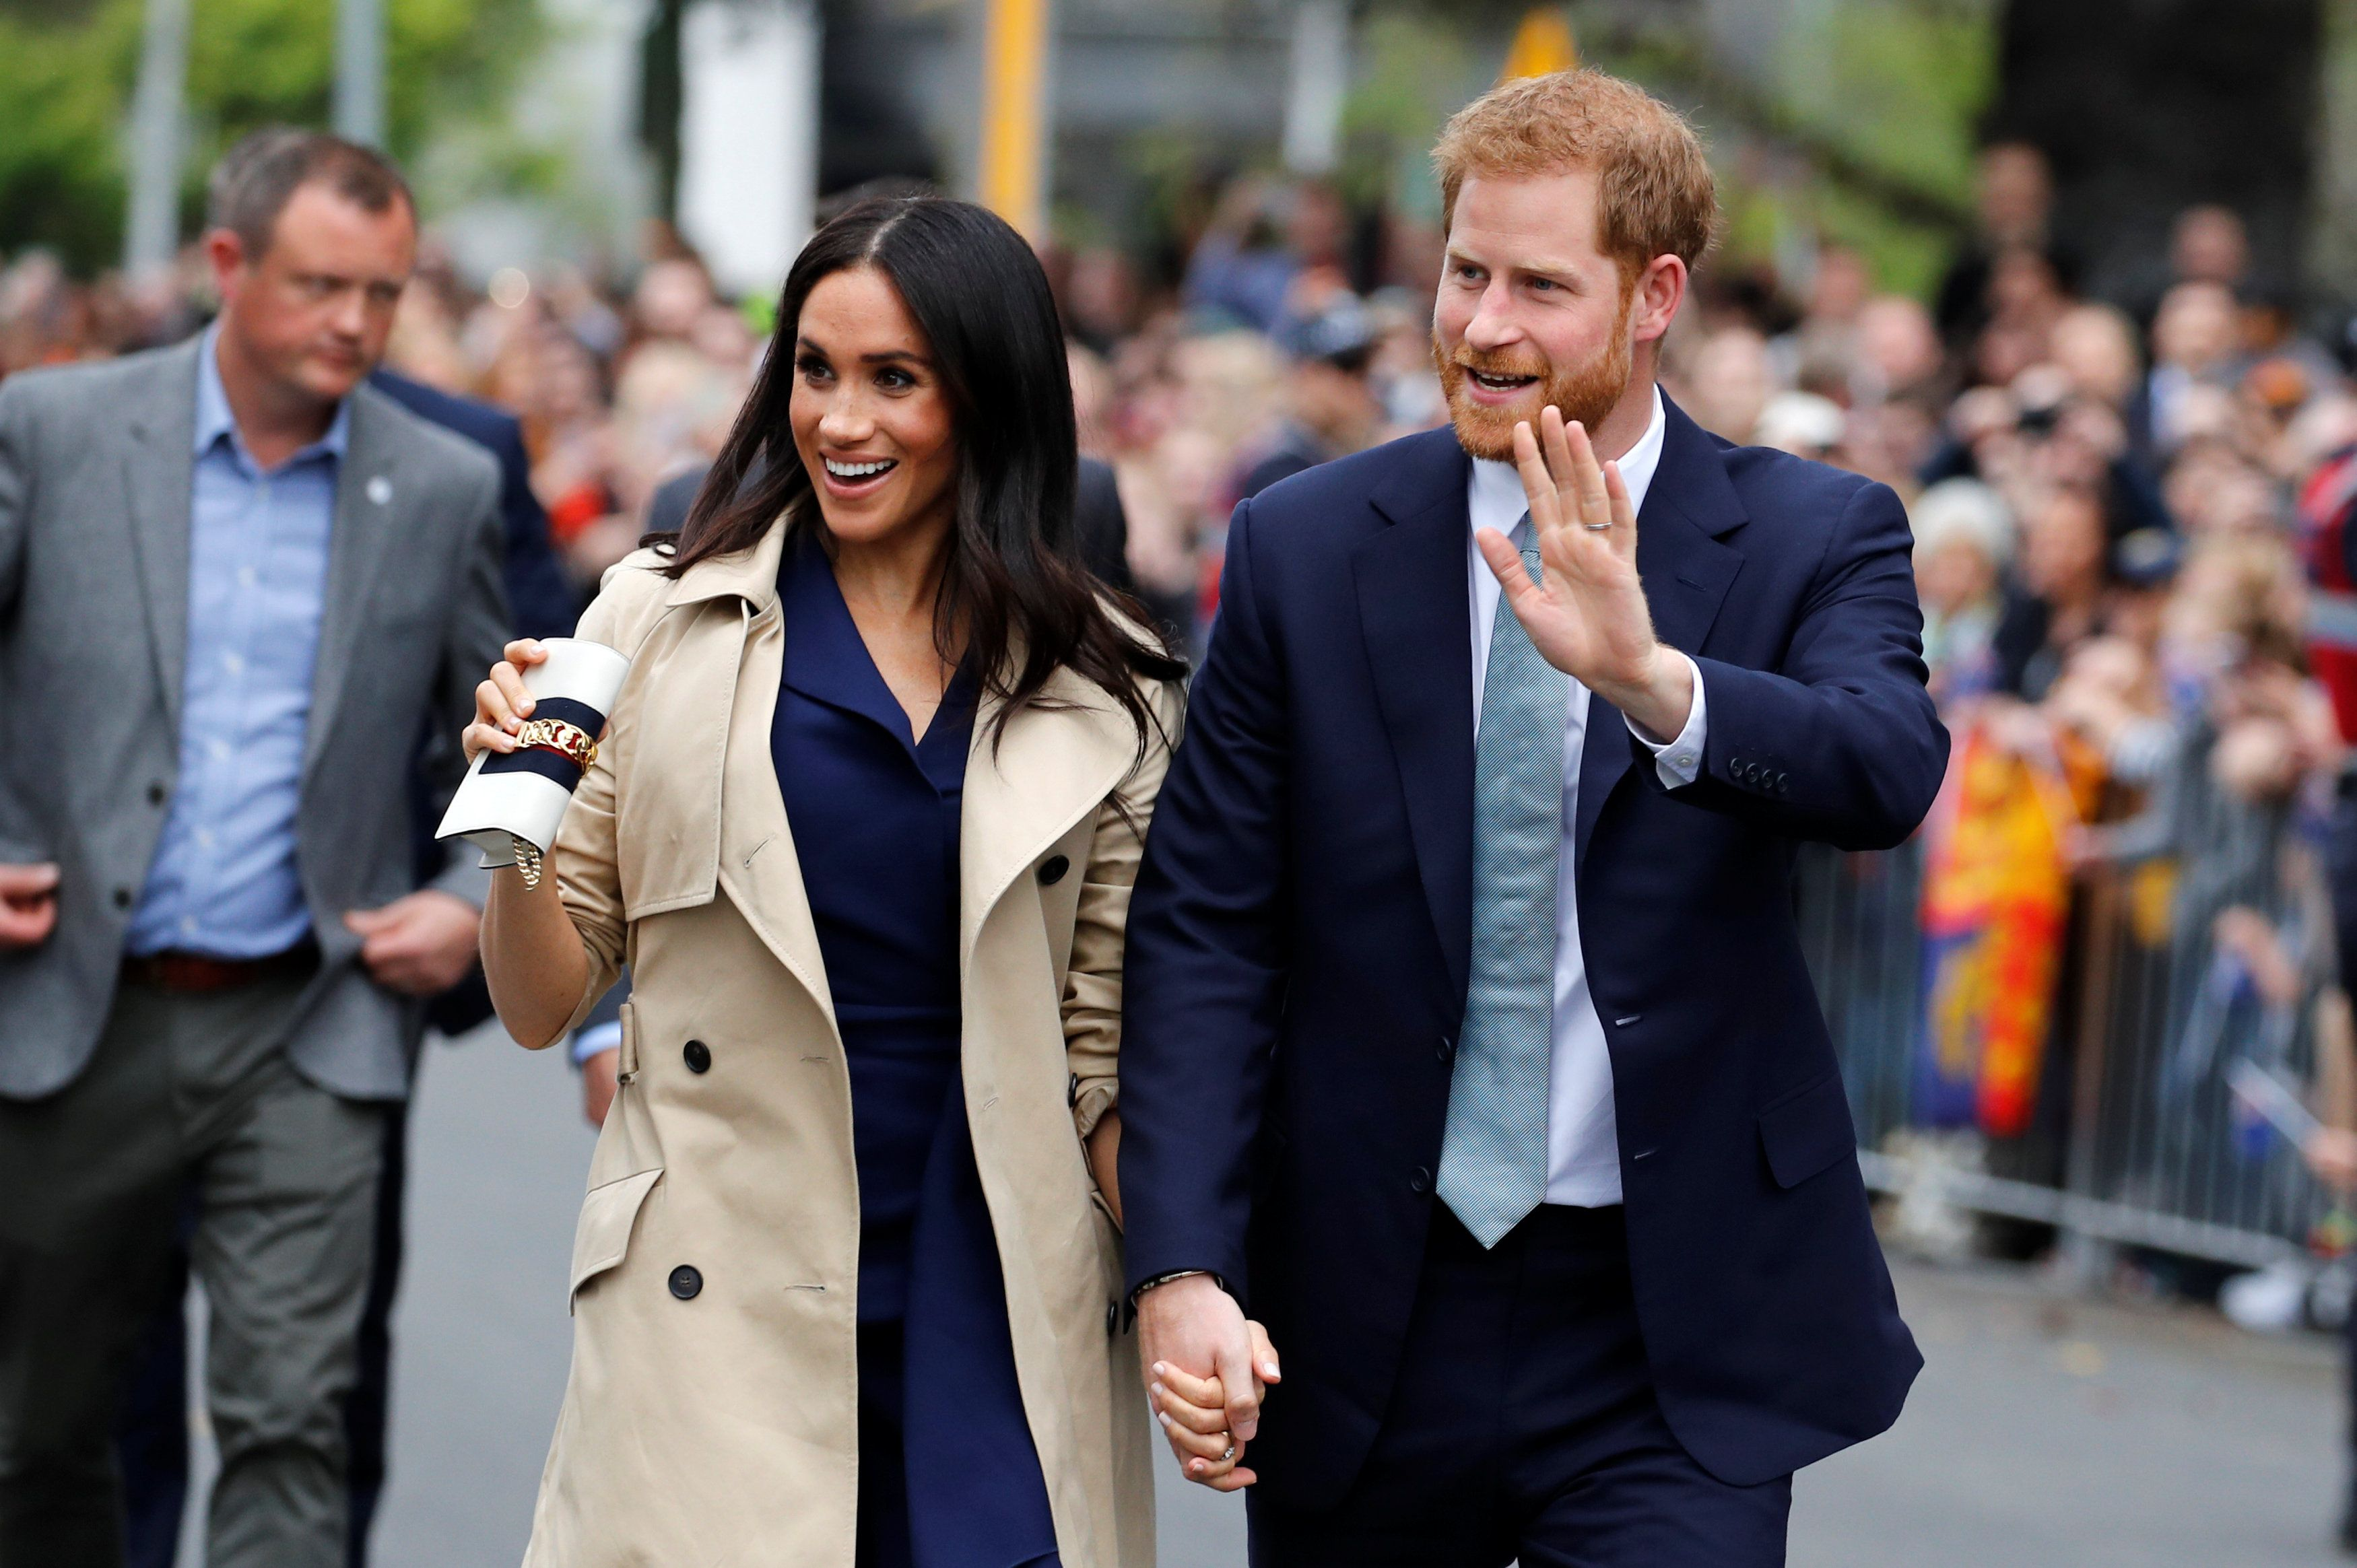 Prince Harry and Meghan Markle Reportedly Wanted to Live in Windsor Castle with the Queen Instead of Frogmore Cottage